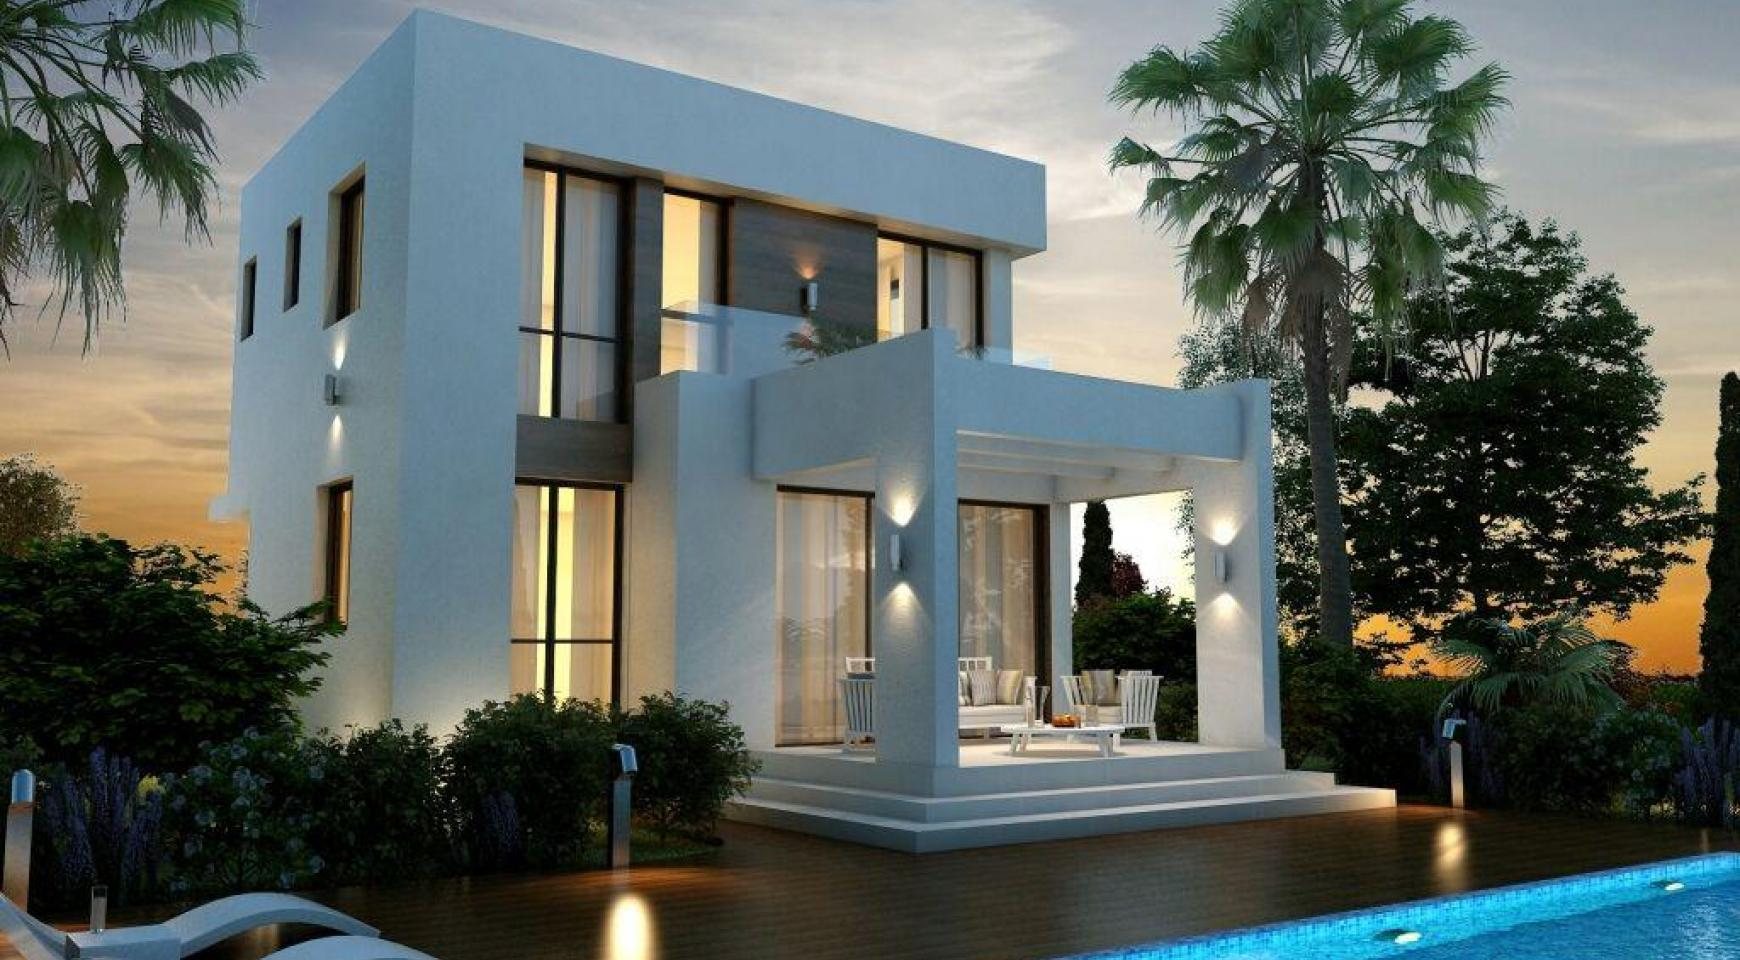 Modern 3 Bedroom Villa in a Complex near the Beach - 6